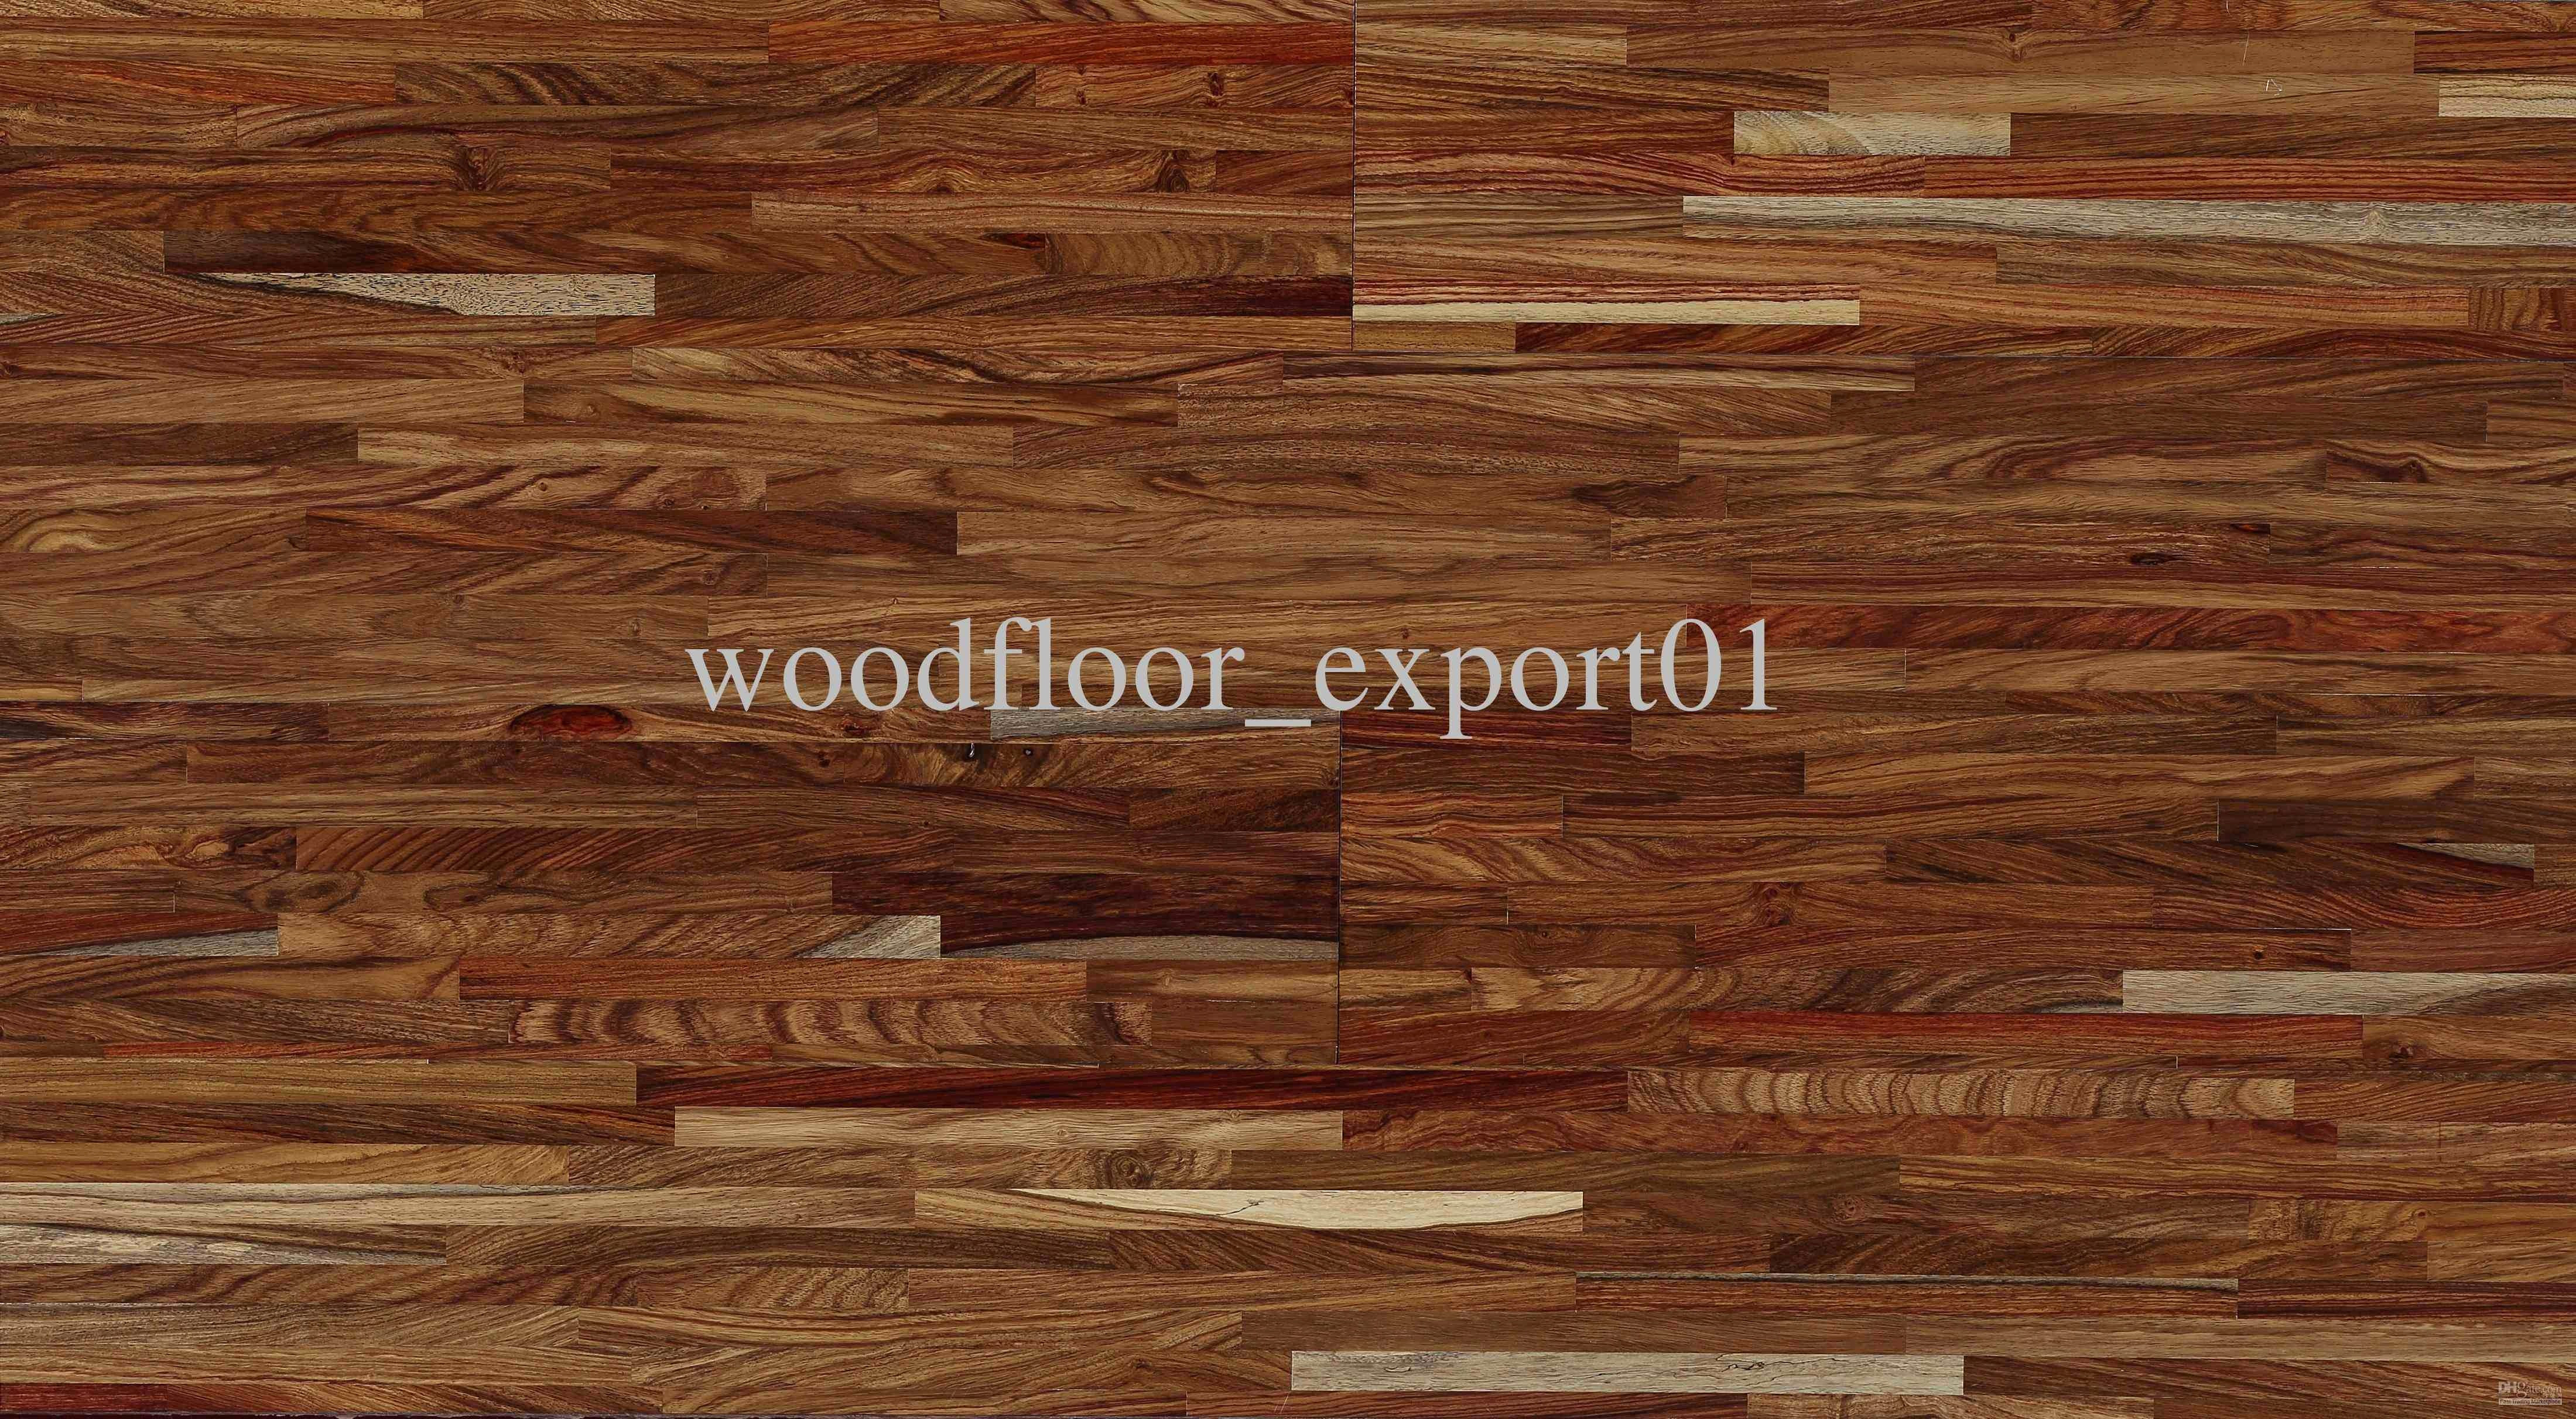 selecting hardwood floor color of 15 unique types of hardwood flooring image dizpos com with types of hardwood flooring awesome 50 inspirational sanding and refinishing hardwood floors graphics image of 15